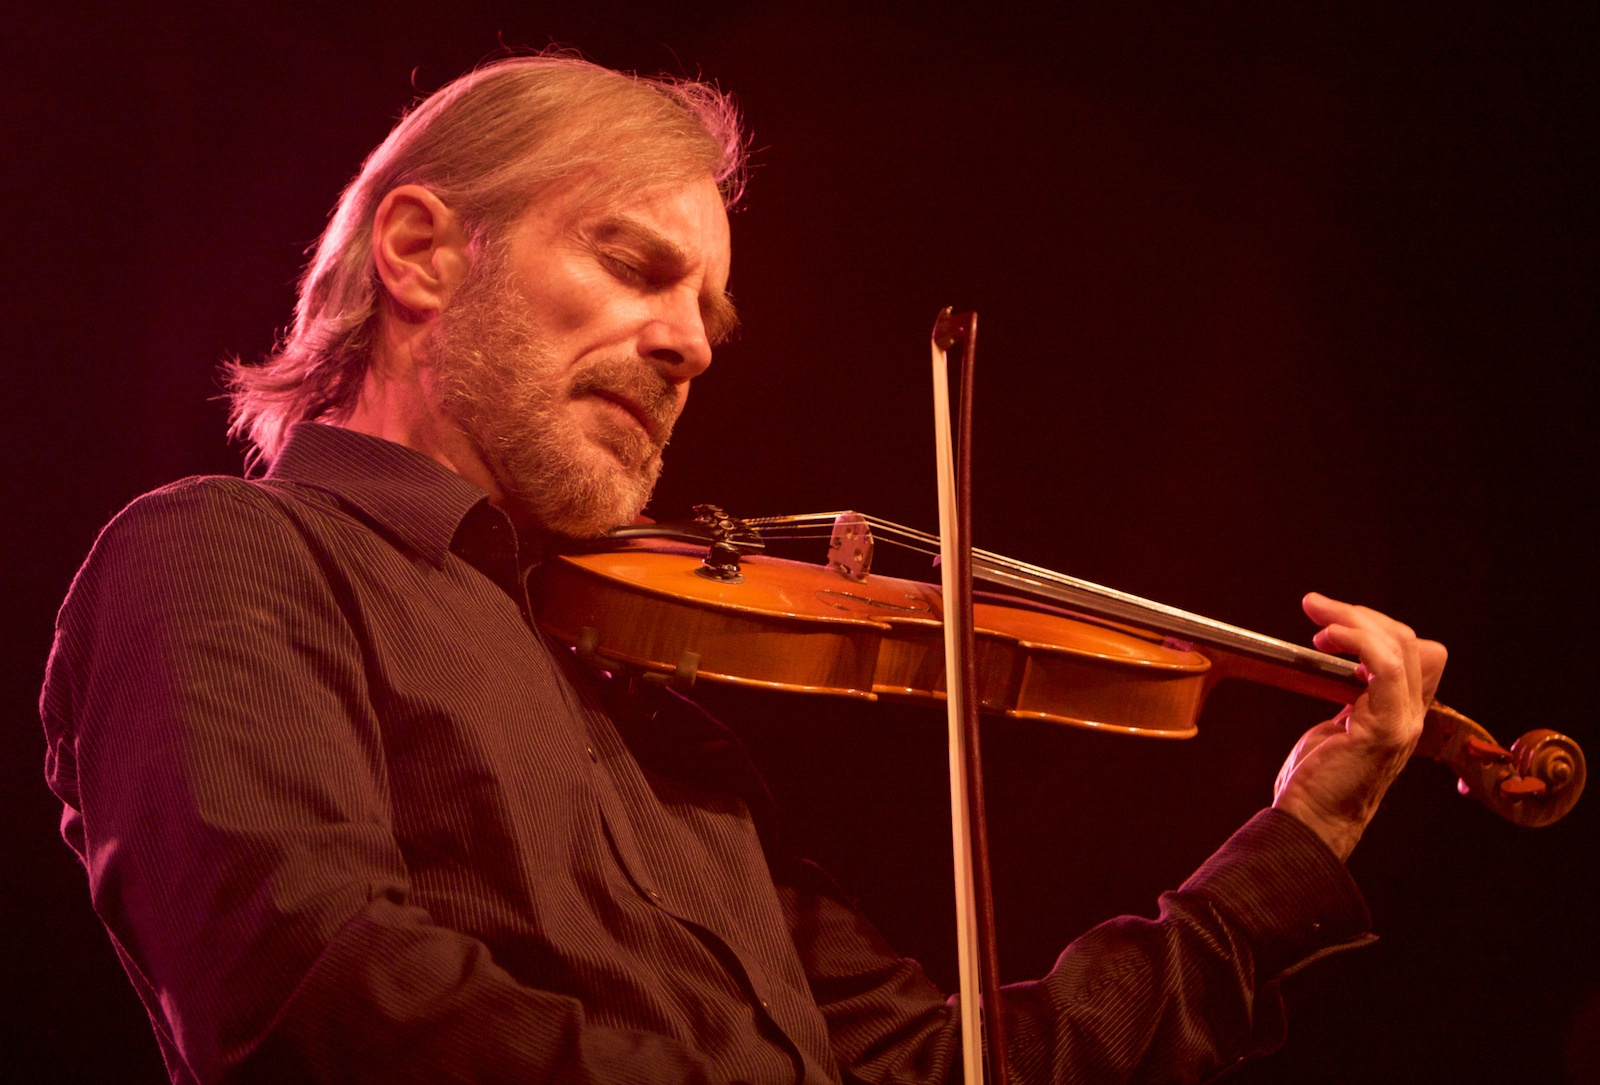 Jean-Luc Ponty, master of the jazz/fusion violin, has performed with artists from Frank Zappa to Béla Fleck. He brings his touring band to South Park Amphitheater for a free concert. (Photo: Guillaume Laurent)